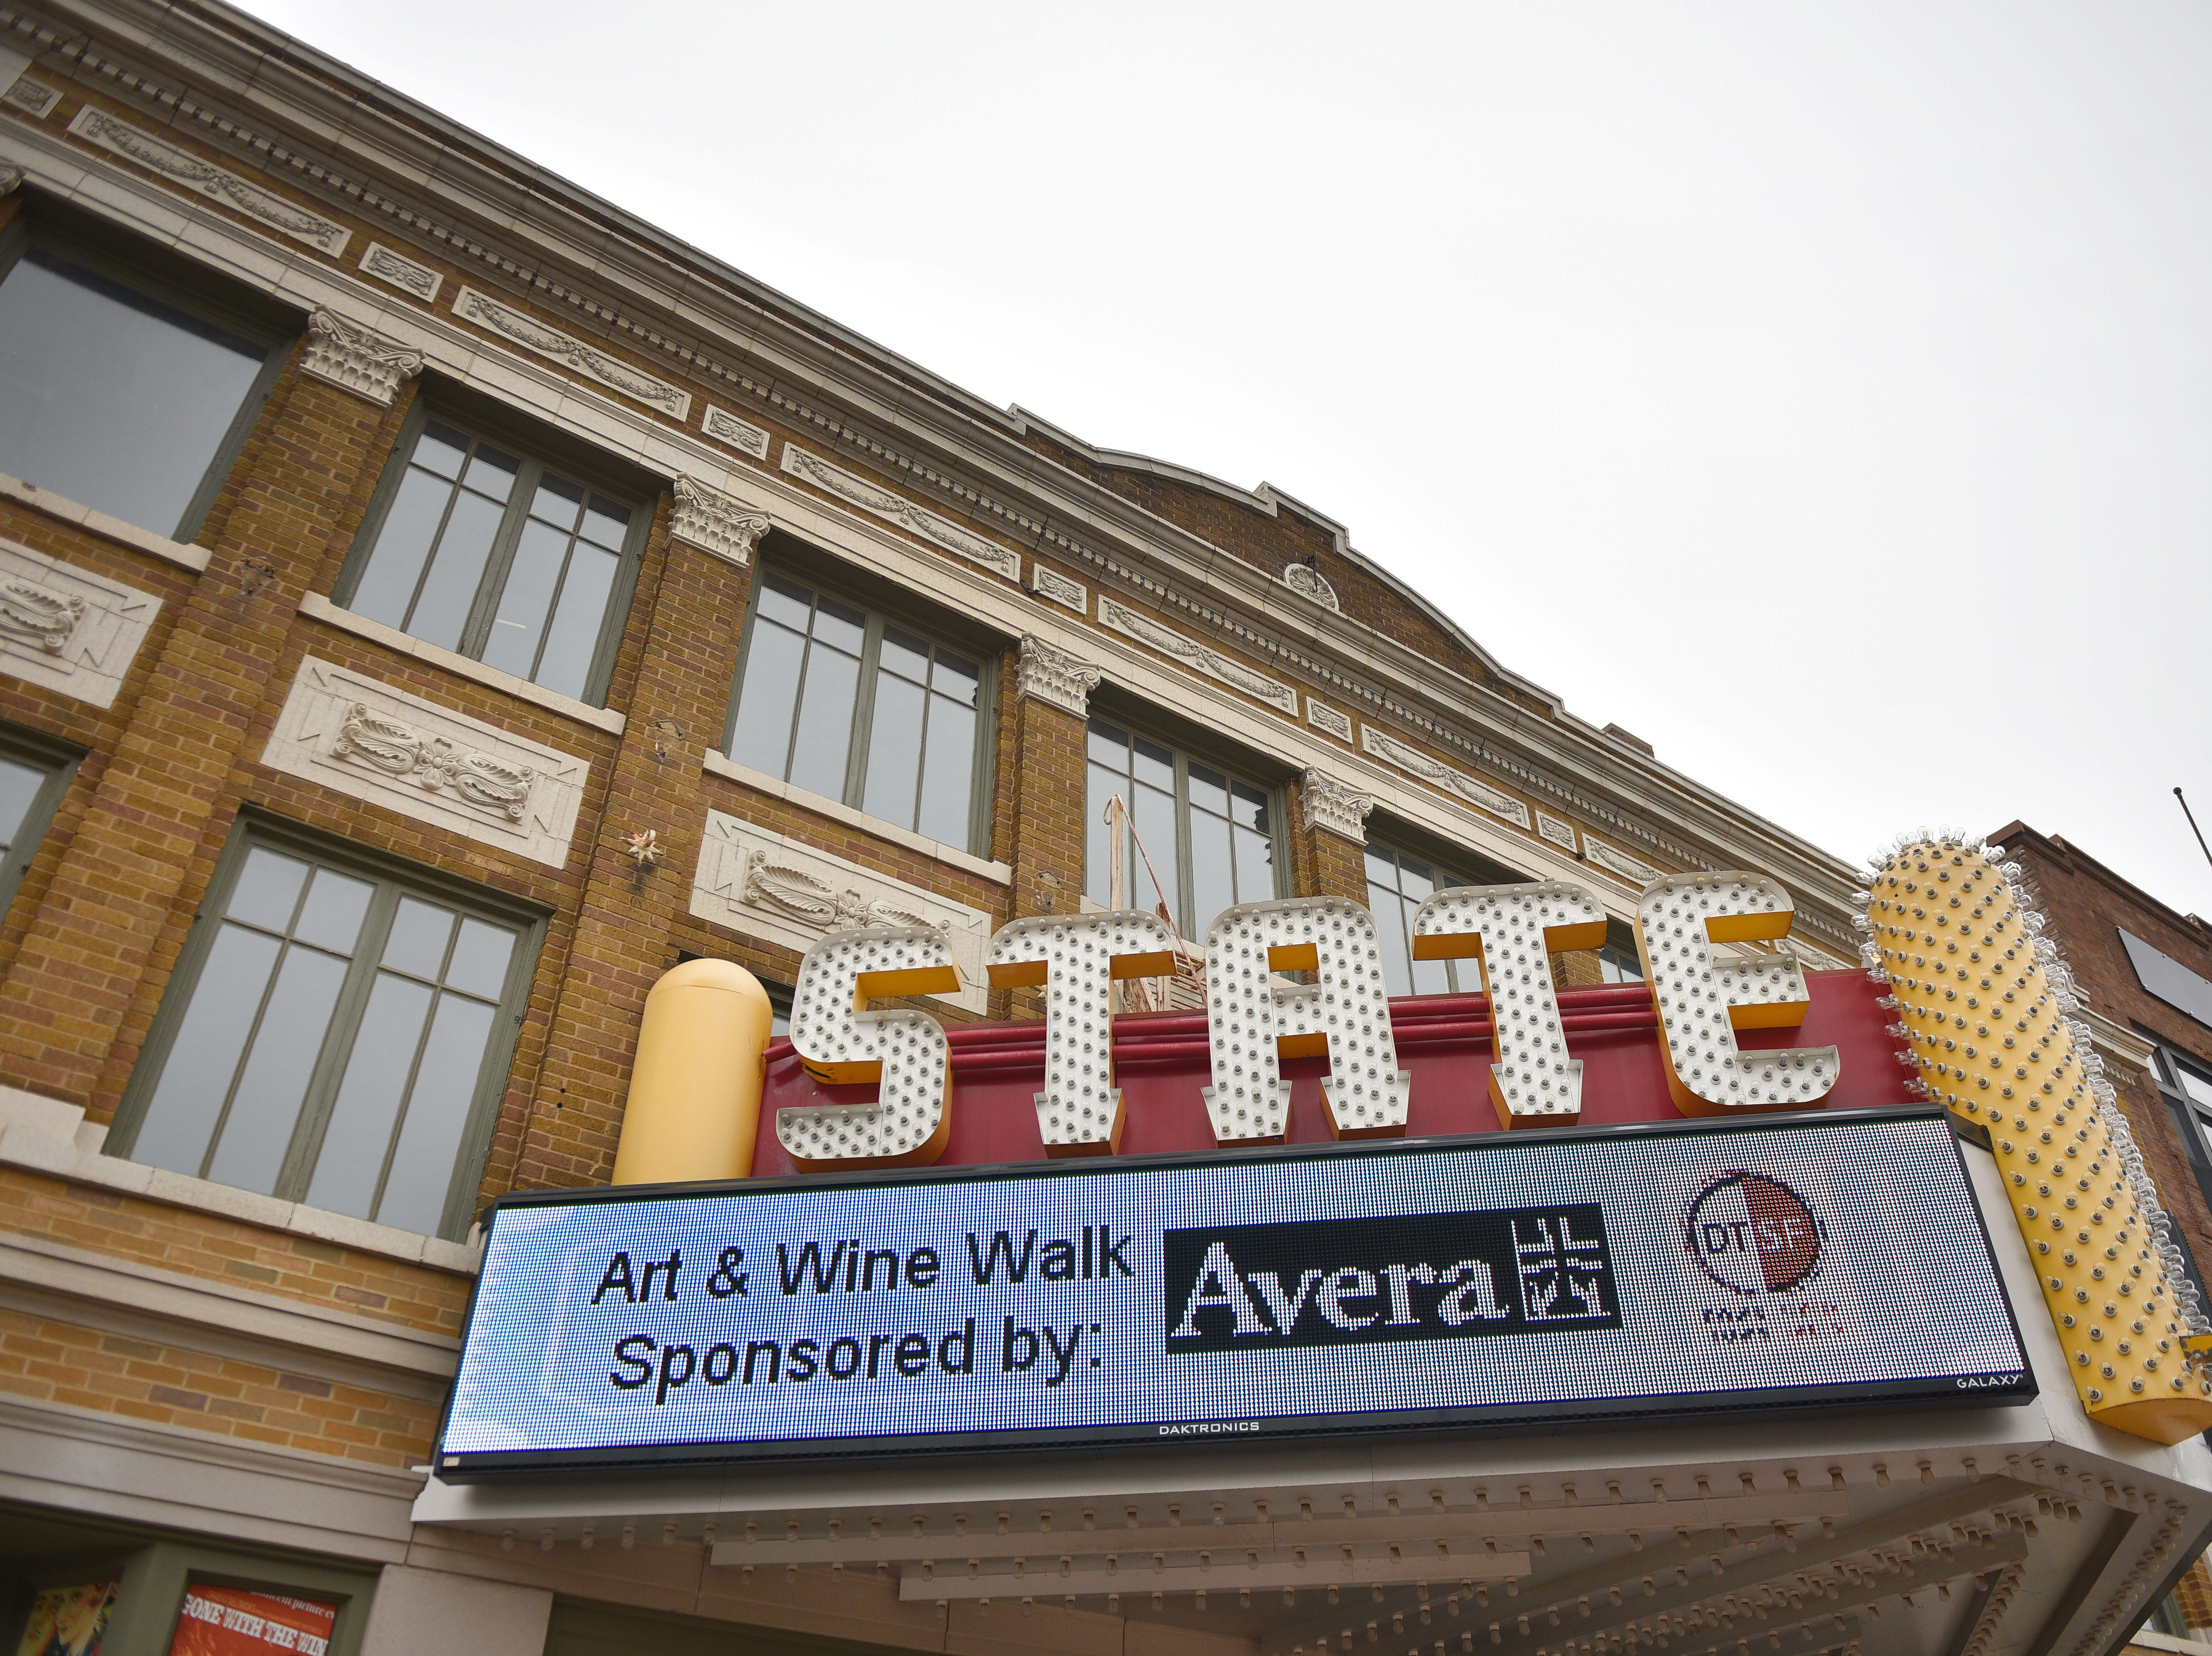 The State Theatre Tuesday, Oct. 2, in downtown Sioux Falls. The State Theatre has been undergoing updates and renovations.